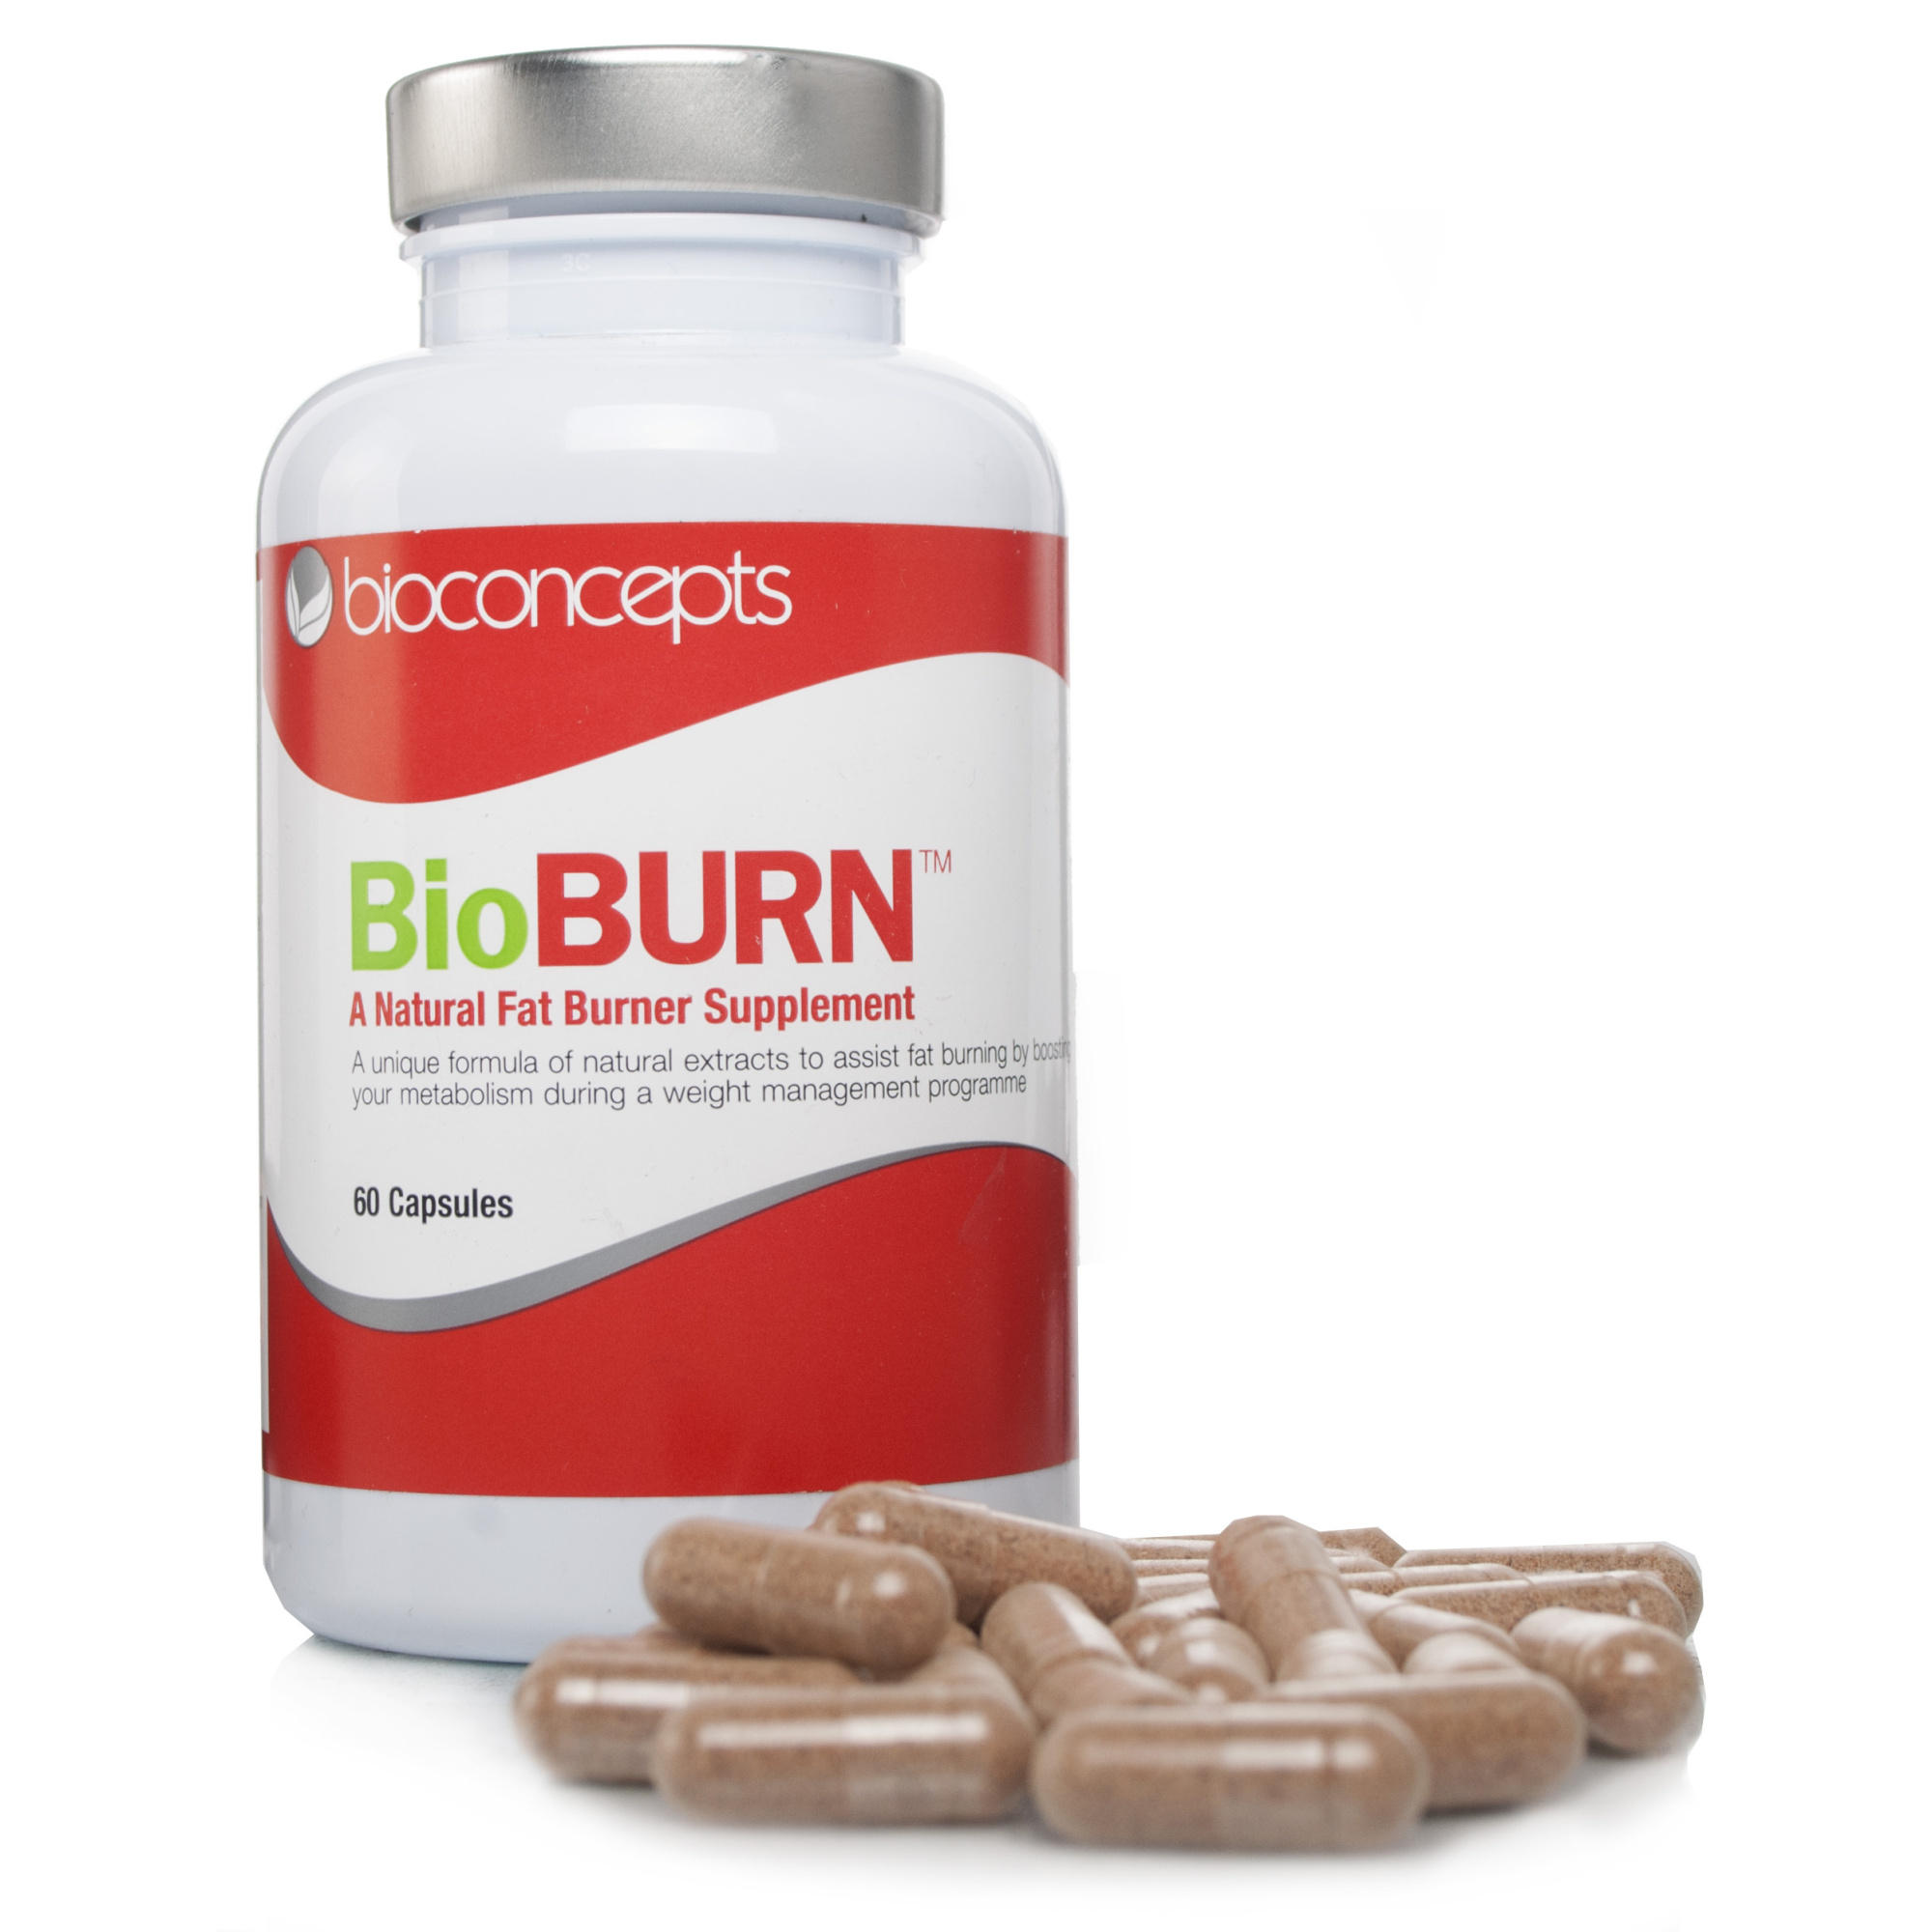 fat burner supplements 5 fat burners that work quickly let's take a look at the need to know facts about fat burners and then we'll walk you through the top three supplements on the market to help you burn fat fast.